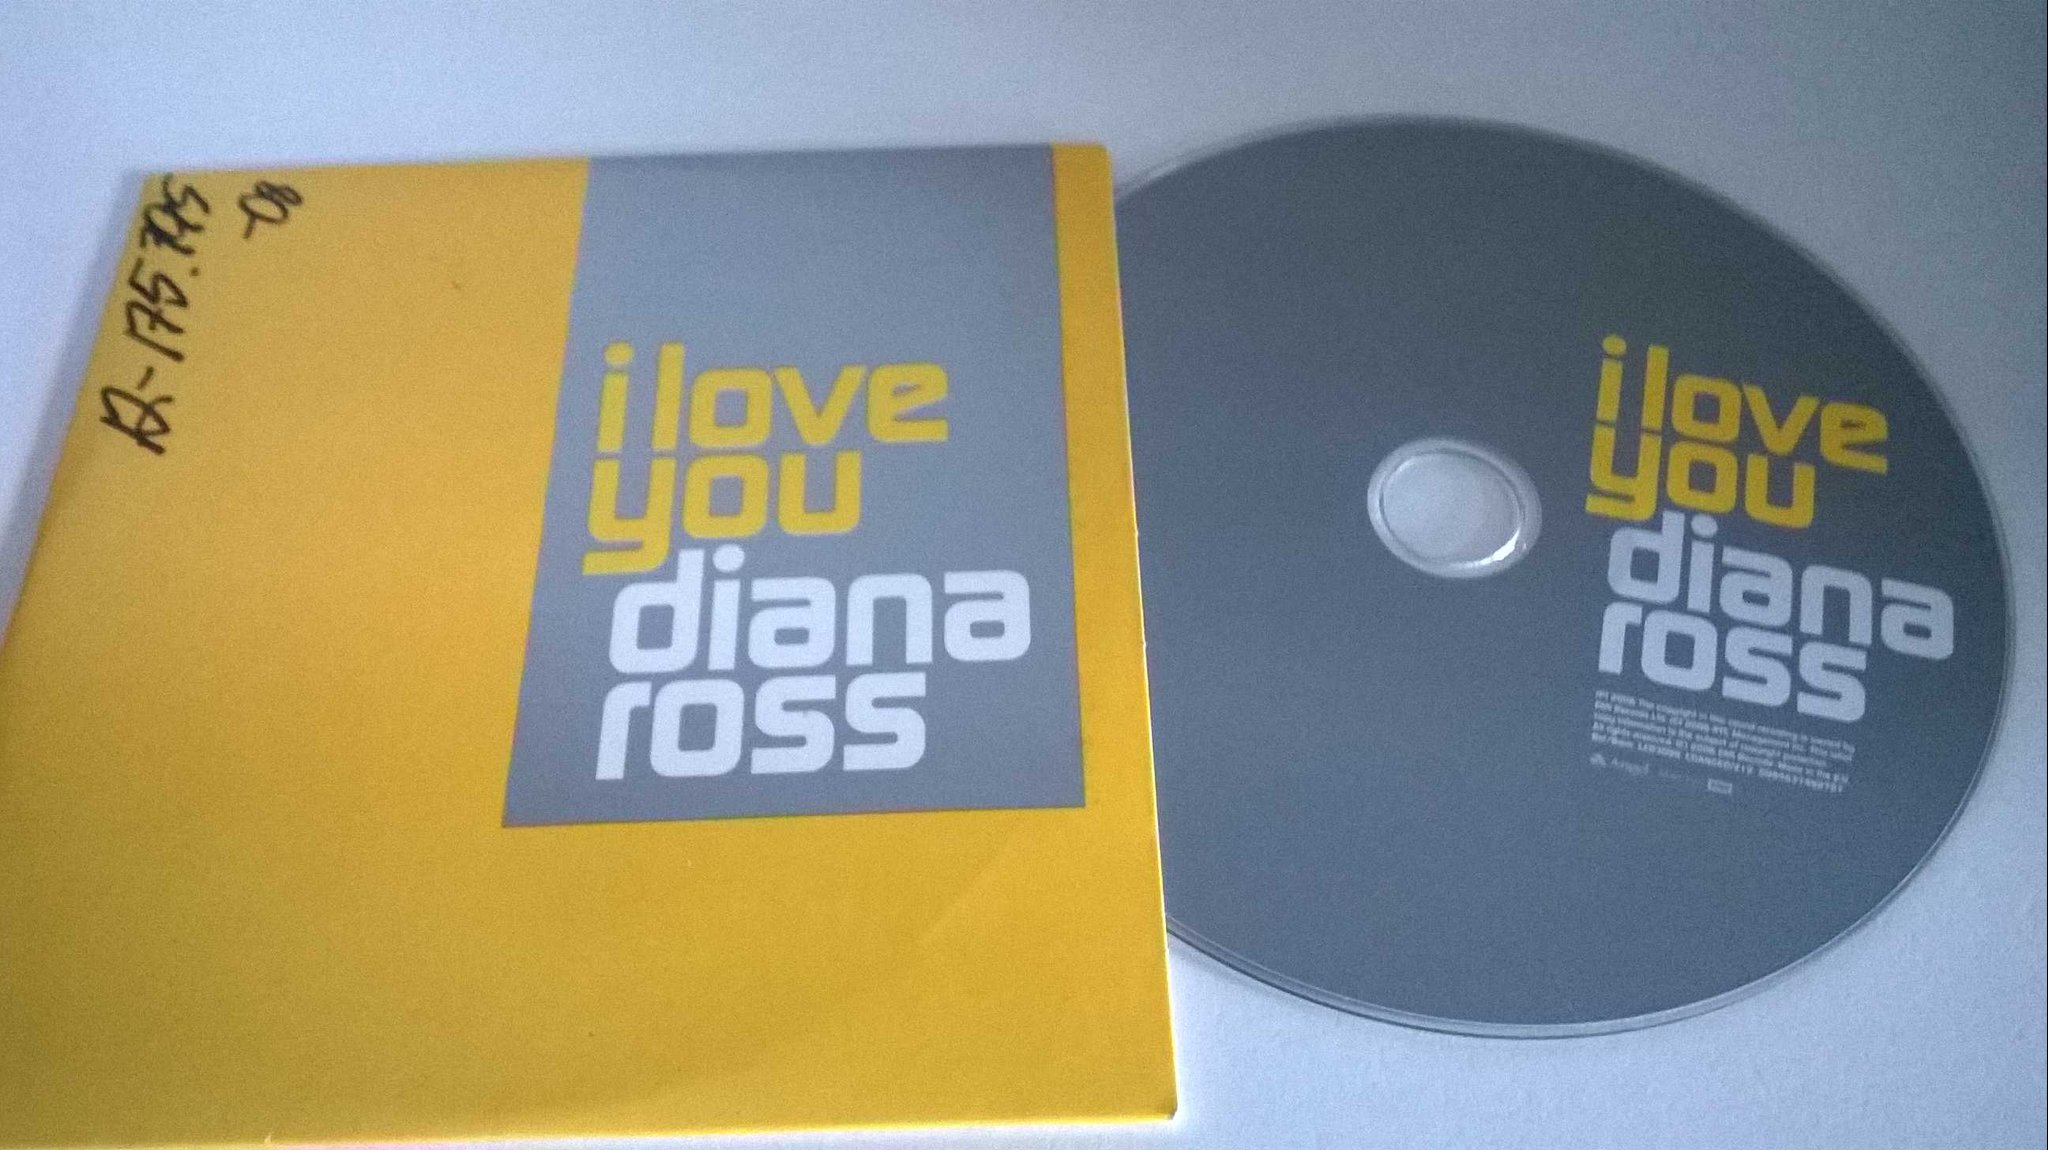 Diana Ross - I love you, single CD